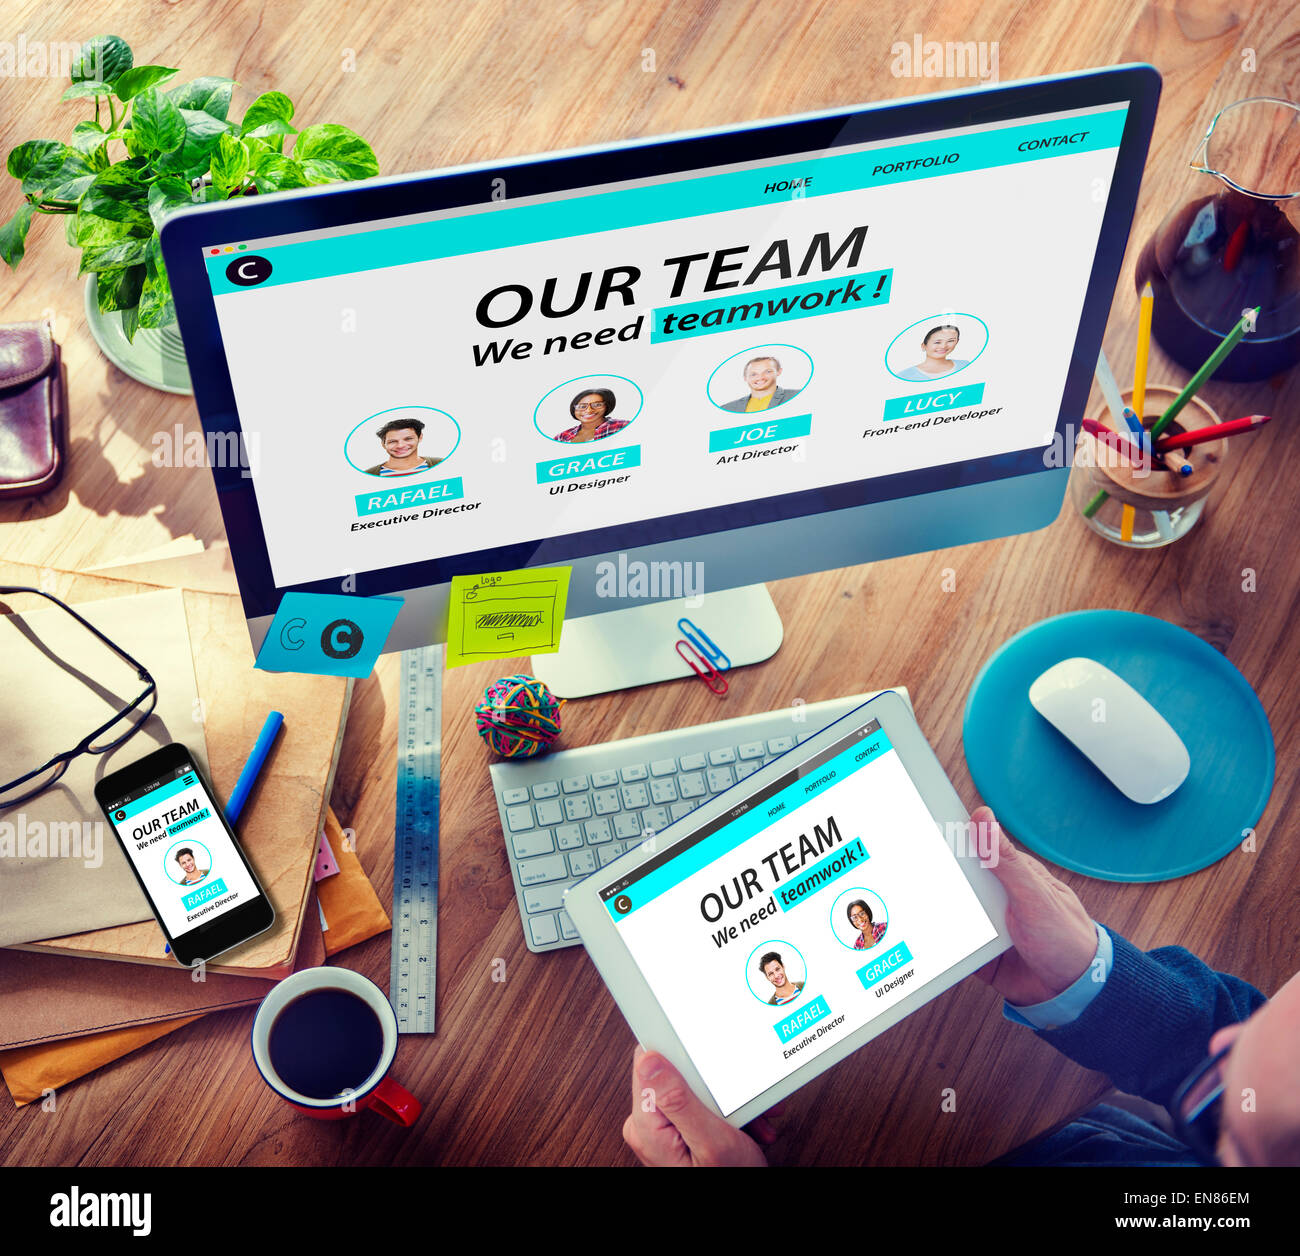 Man Working Computer Organization Team Building Solution Concept - Stock Image